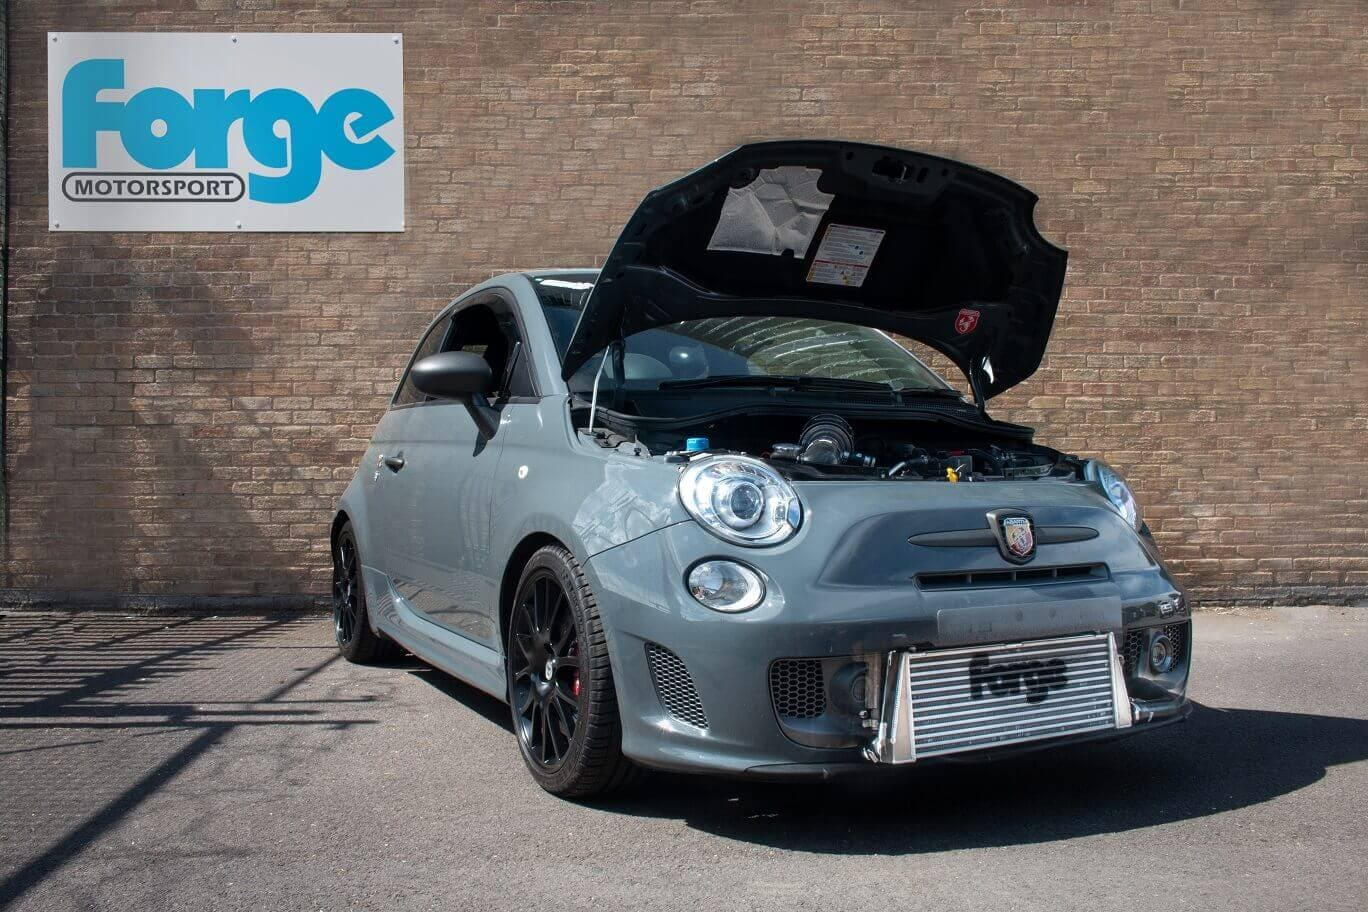 Fiat 500595695 Forge Motorsport Performance Front Mounted Intercooler Kit FMINTF500 GHOSTED